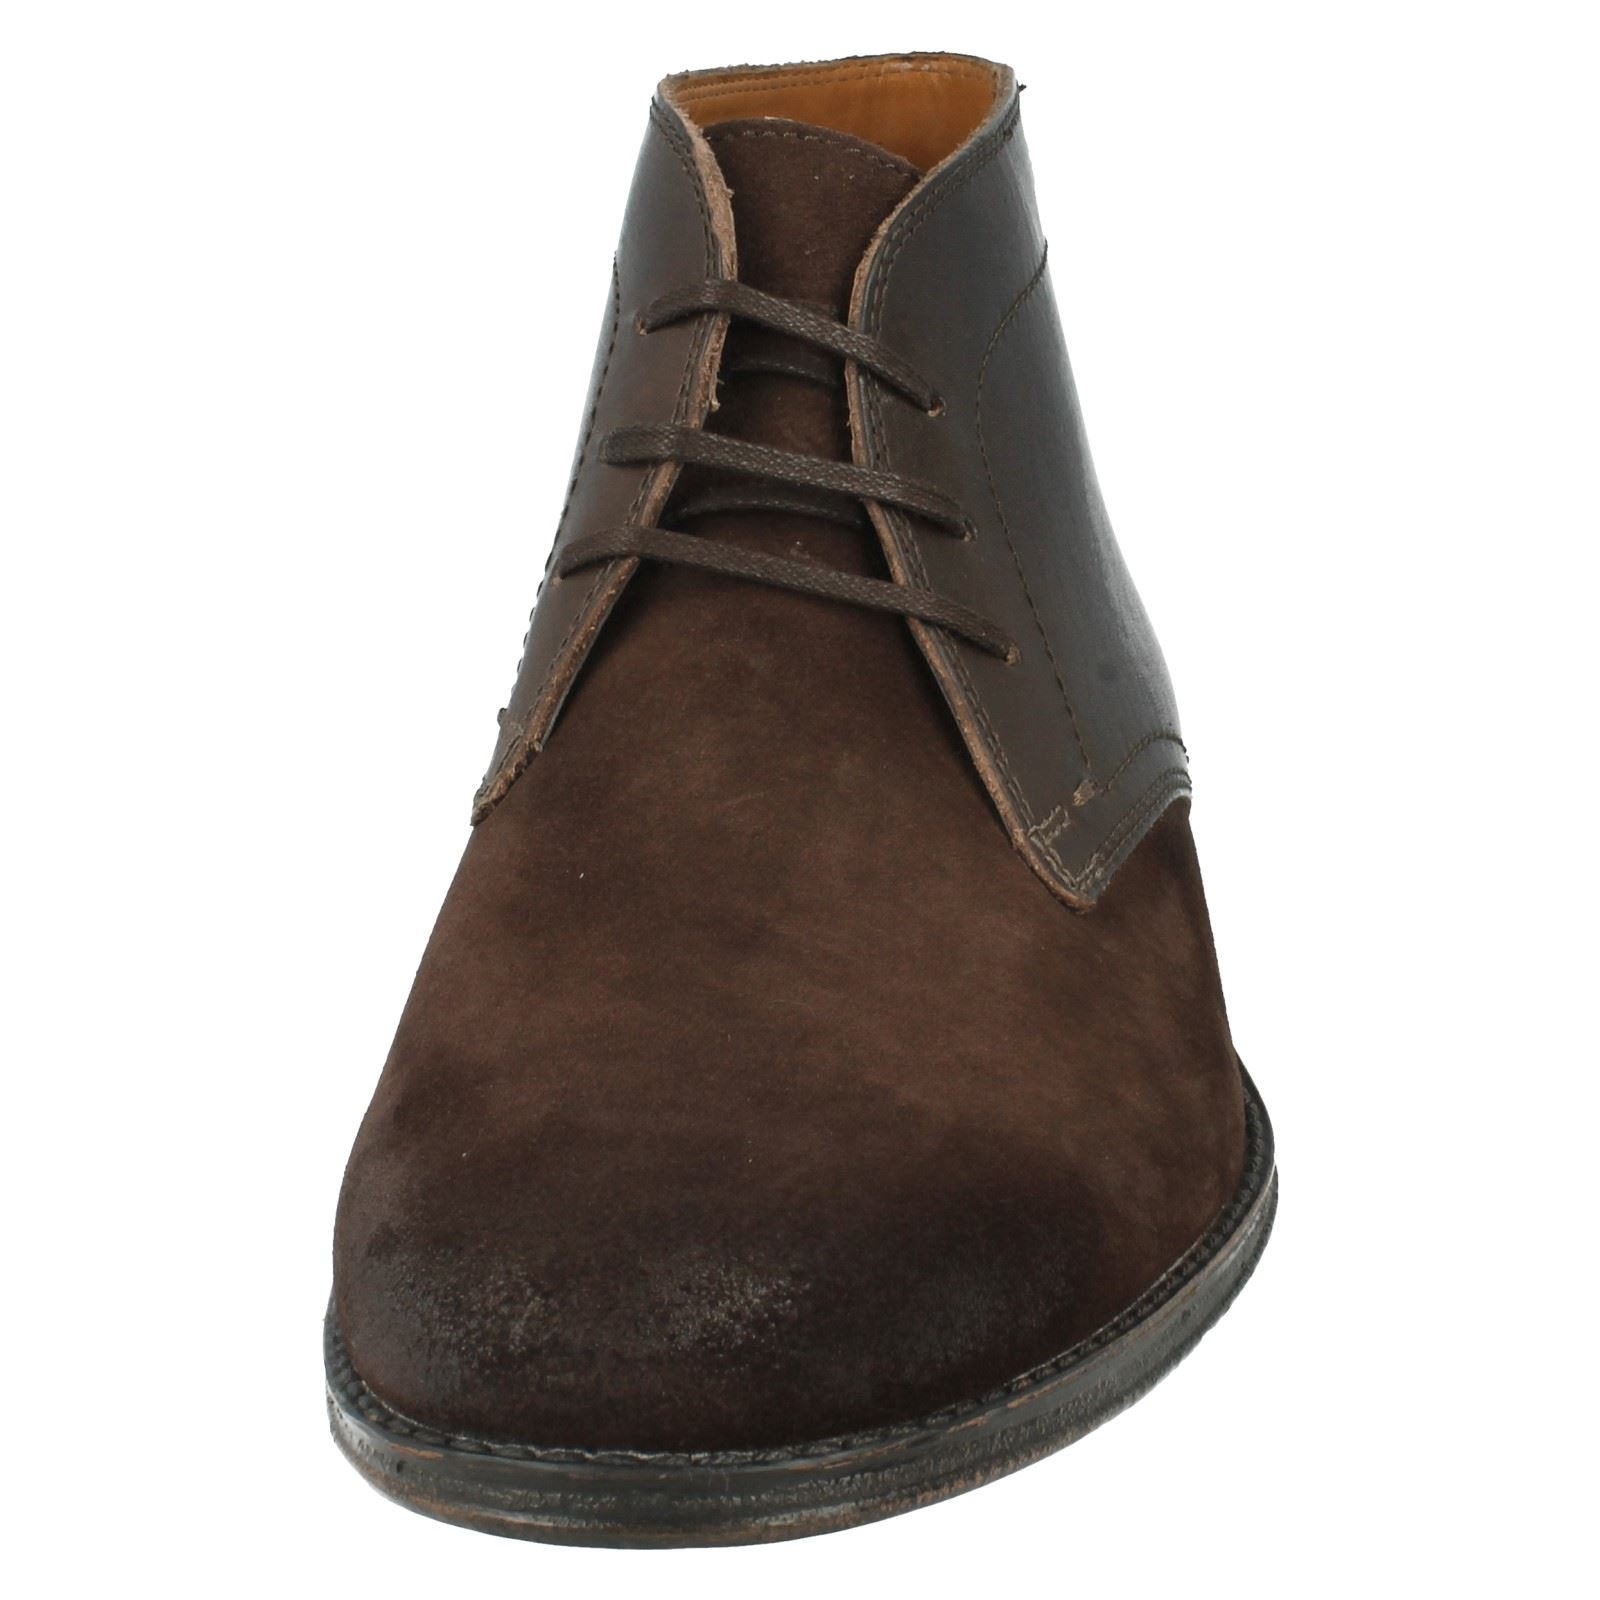 Mens Clarks Smart Leather Boots The Style -  Hawkley Rise